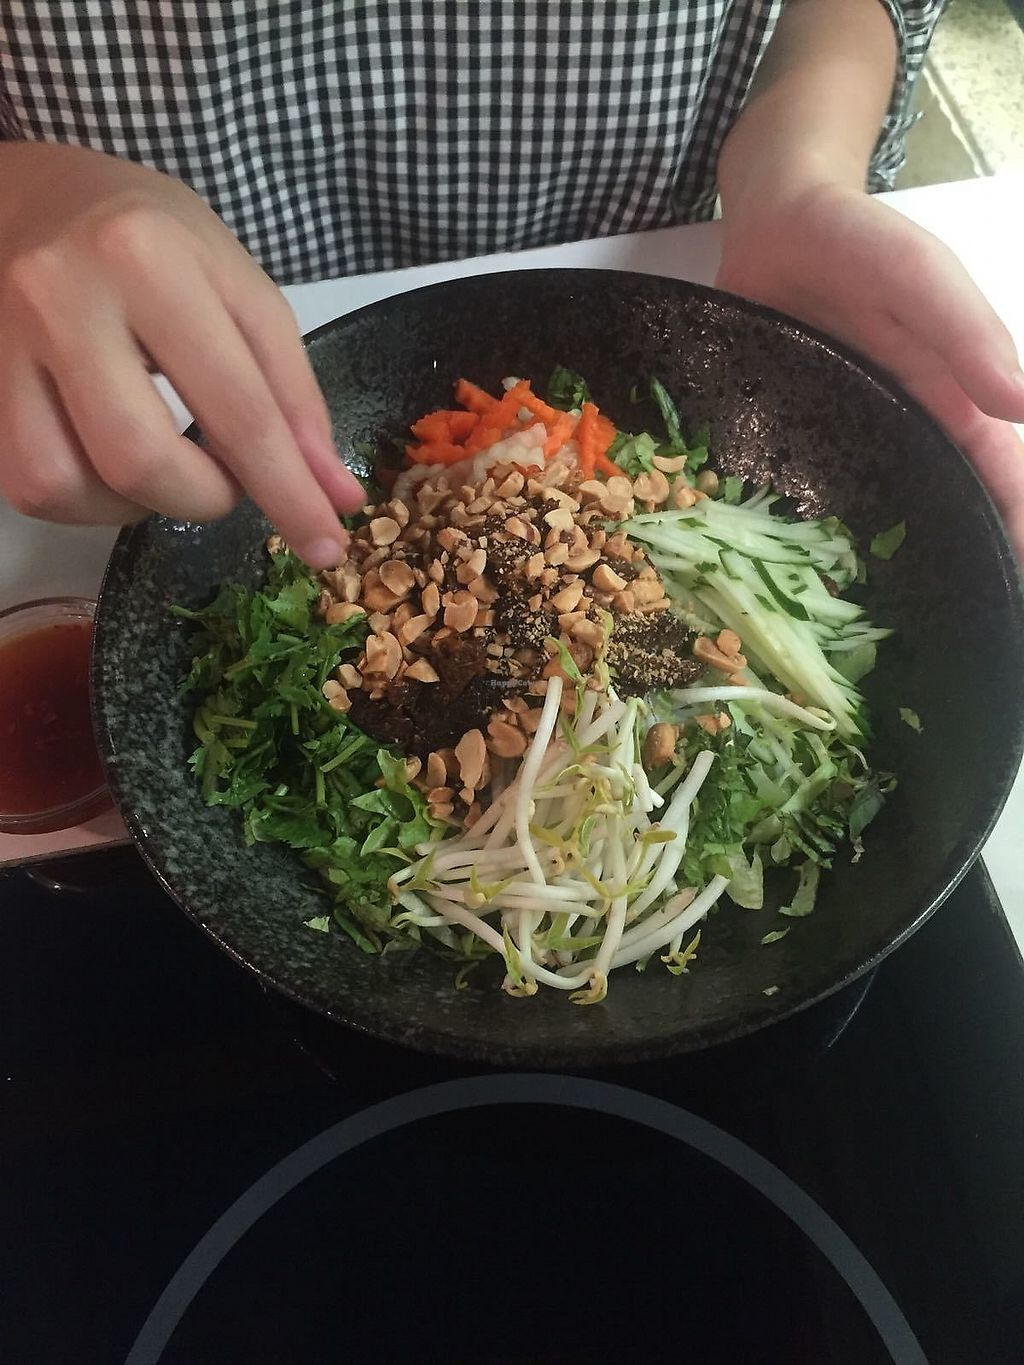 """Photo of Loving Hut - Guangfu South Rd  by <a href=""""/members/profile/FlokiTheCat"""">FlokiTheCat</a> <br/>Rice noodles salad <br/> July 29, 2017  - <a href='/contact/abuse/image/17062/286112'>Report</a>"""